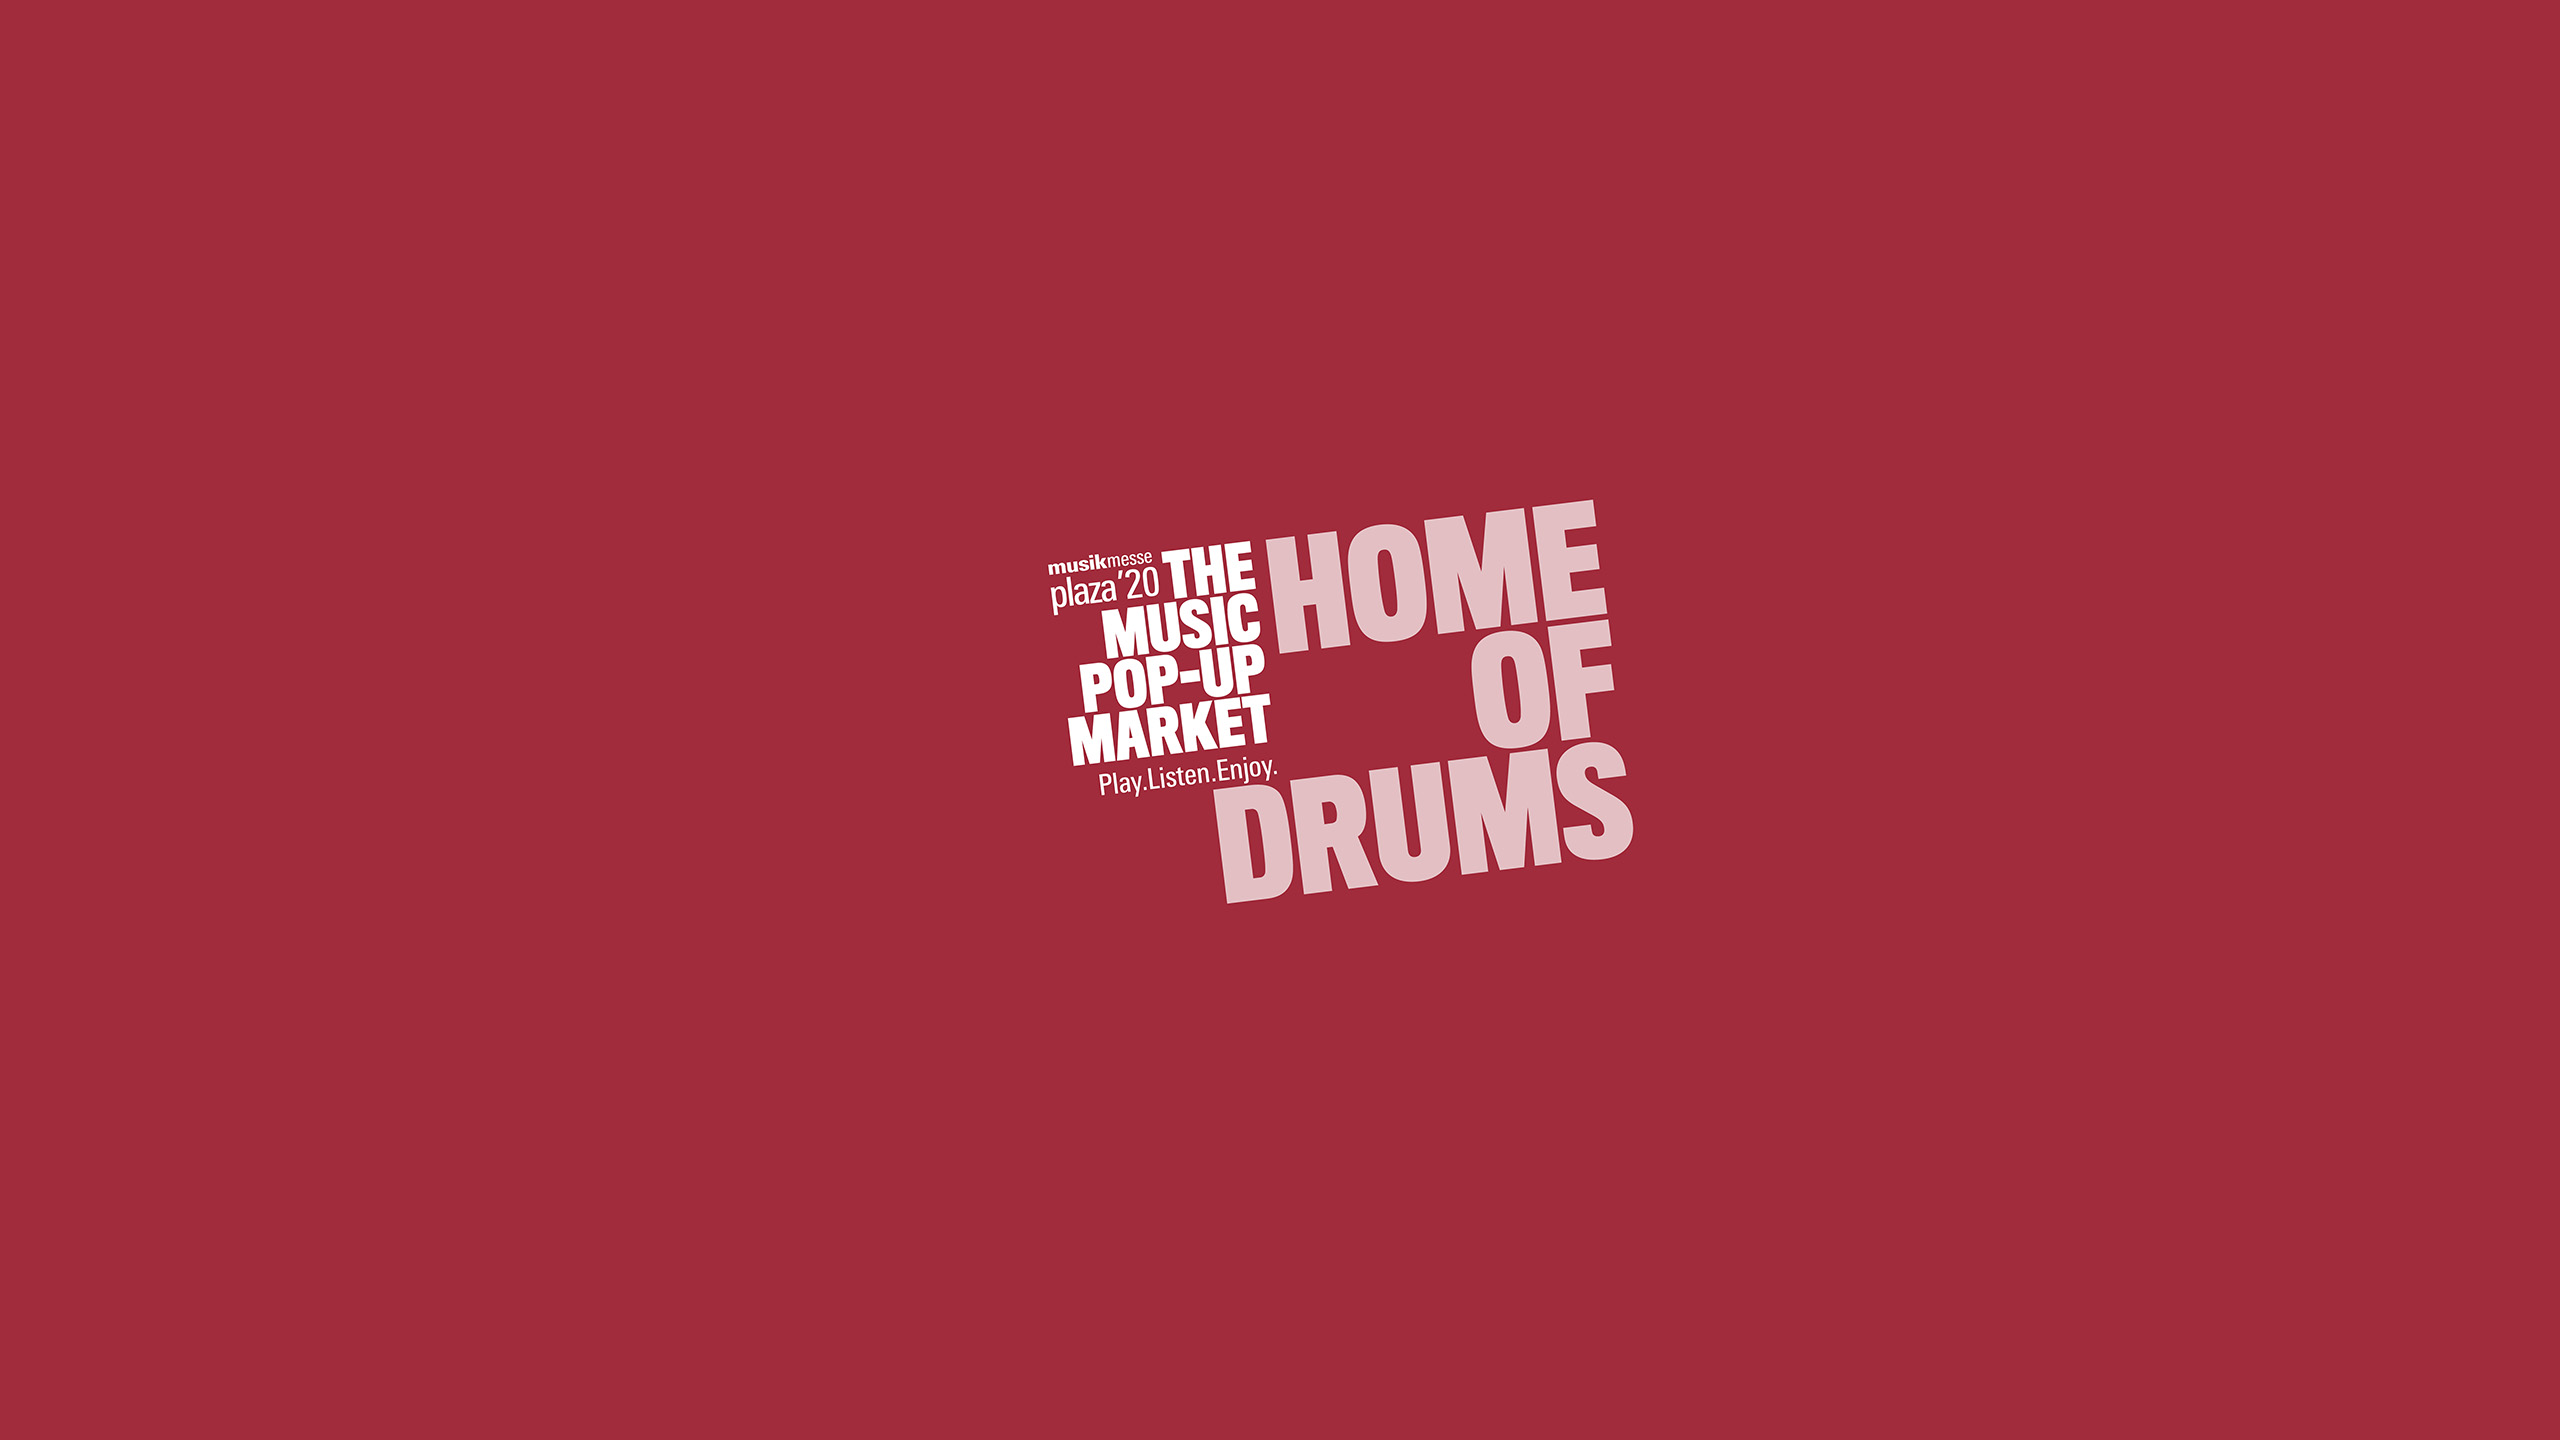 Home of drums at Musikmesse Plaza